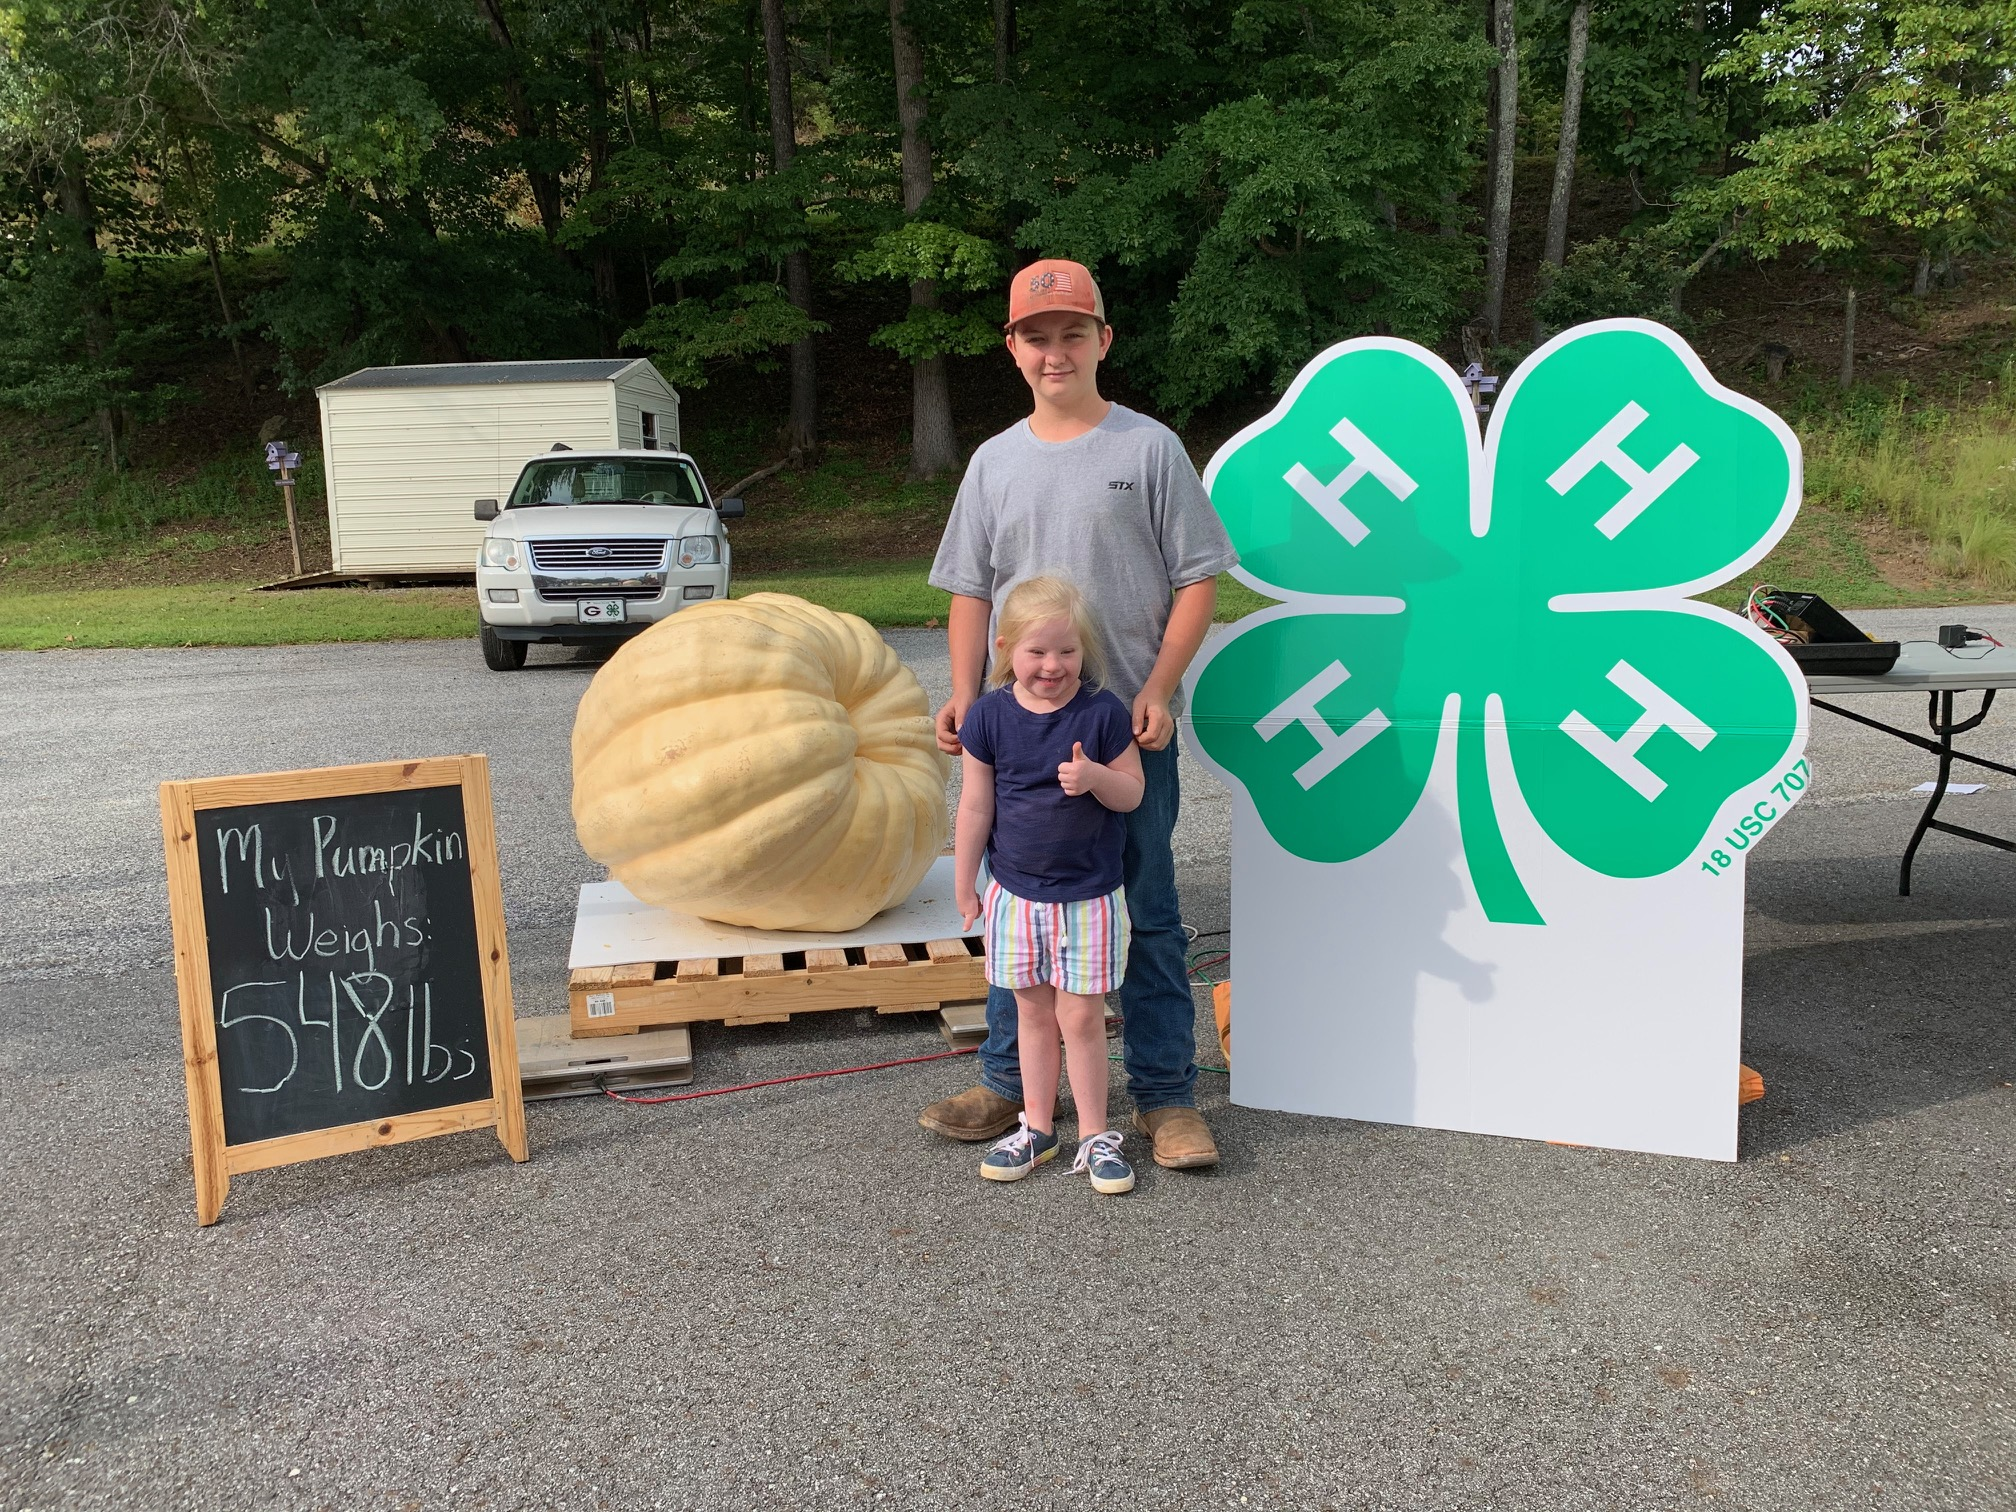 Peyton Collins of Union County had the prize-winning pumpkin, weighing 548 pounds.